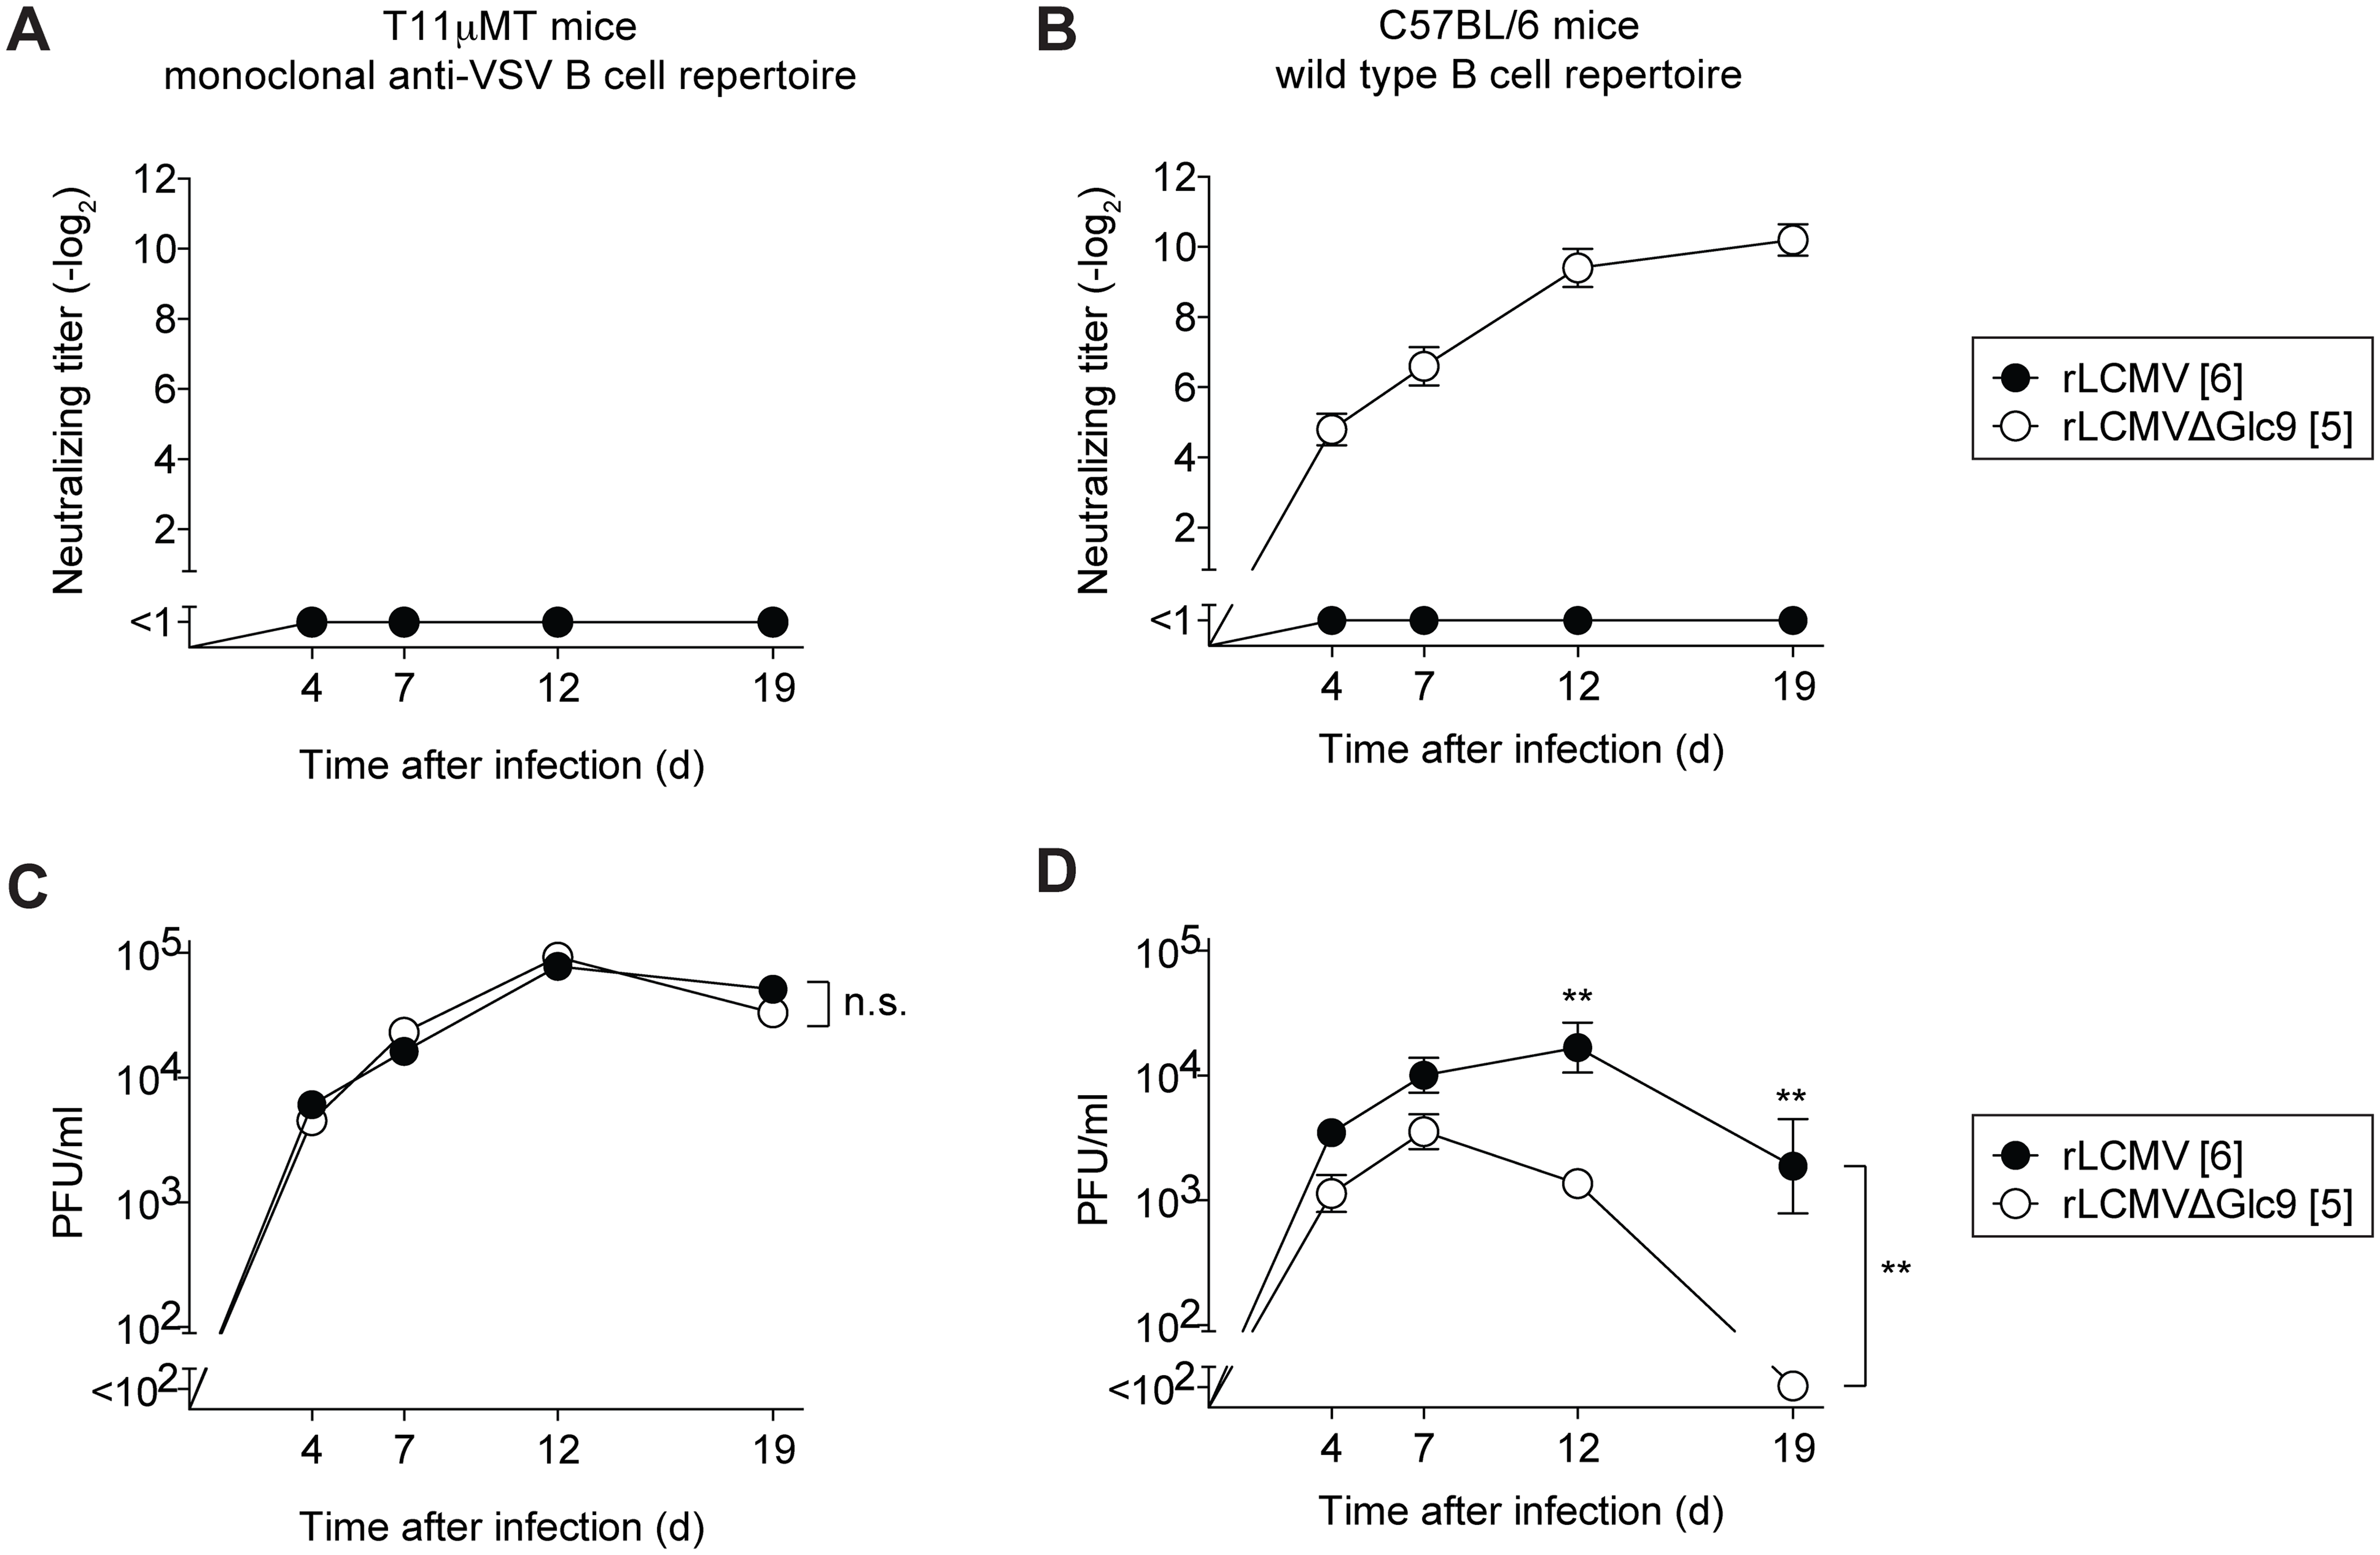 Glc9-mediated nAb evasion promotes protracted LCMV infection in mice.